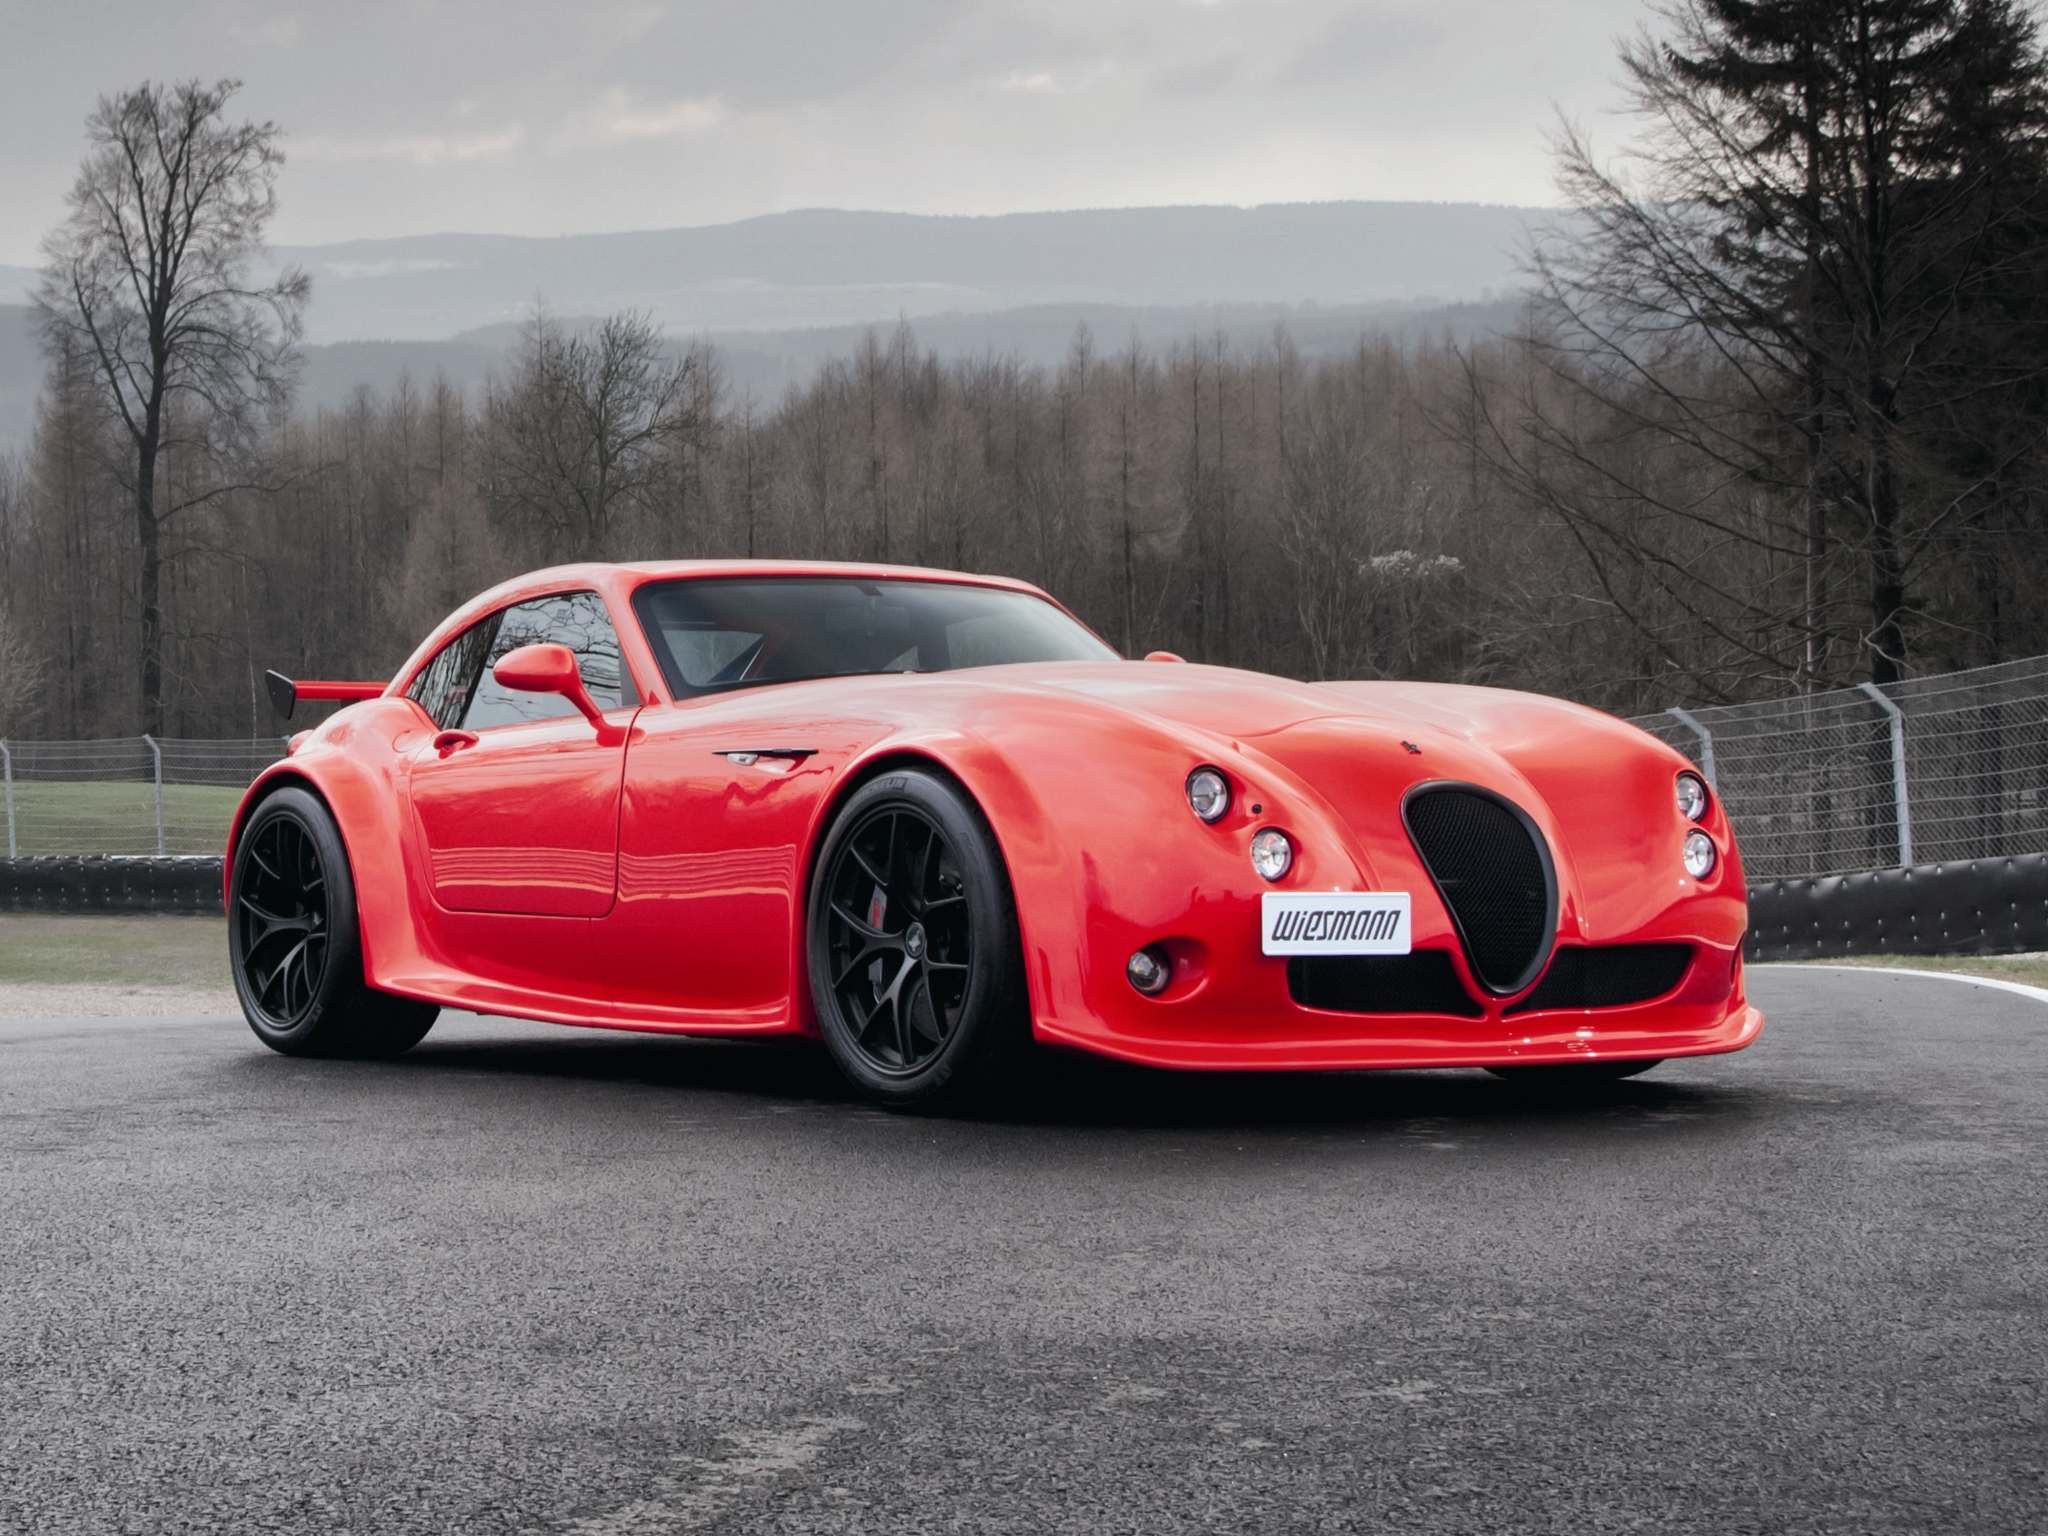 2048x1536 - Wiesmann GT MF4 Wallpapers 2